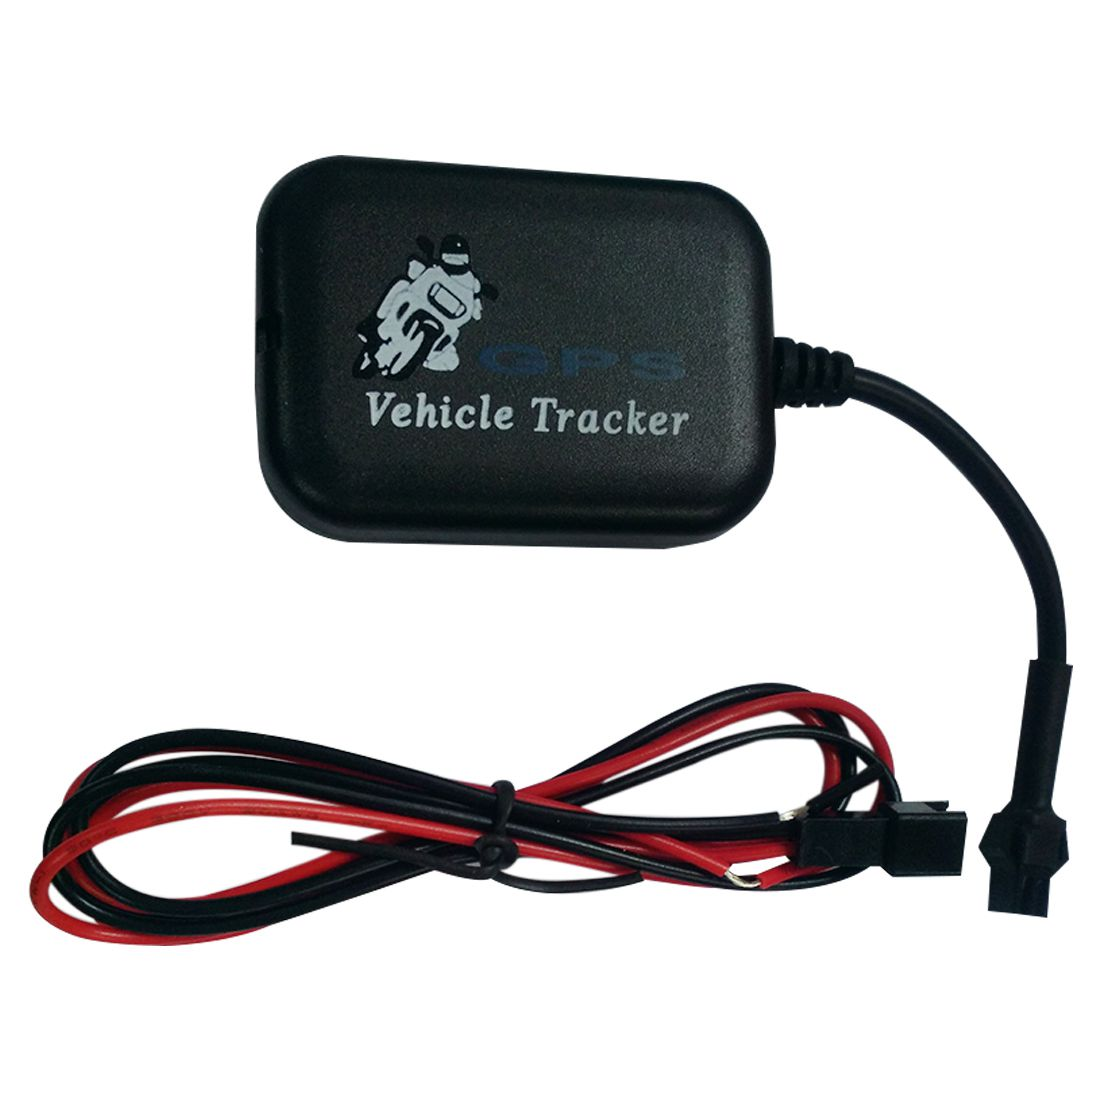 EDFY GPS locator TX 5 miniature hidden gps locator for motorcycles